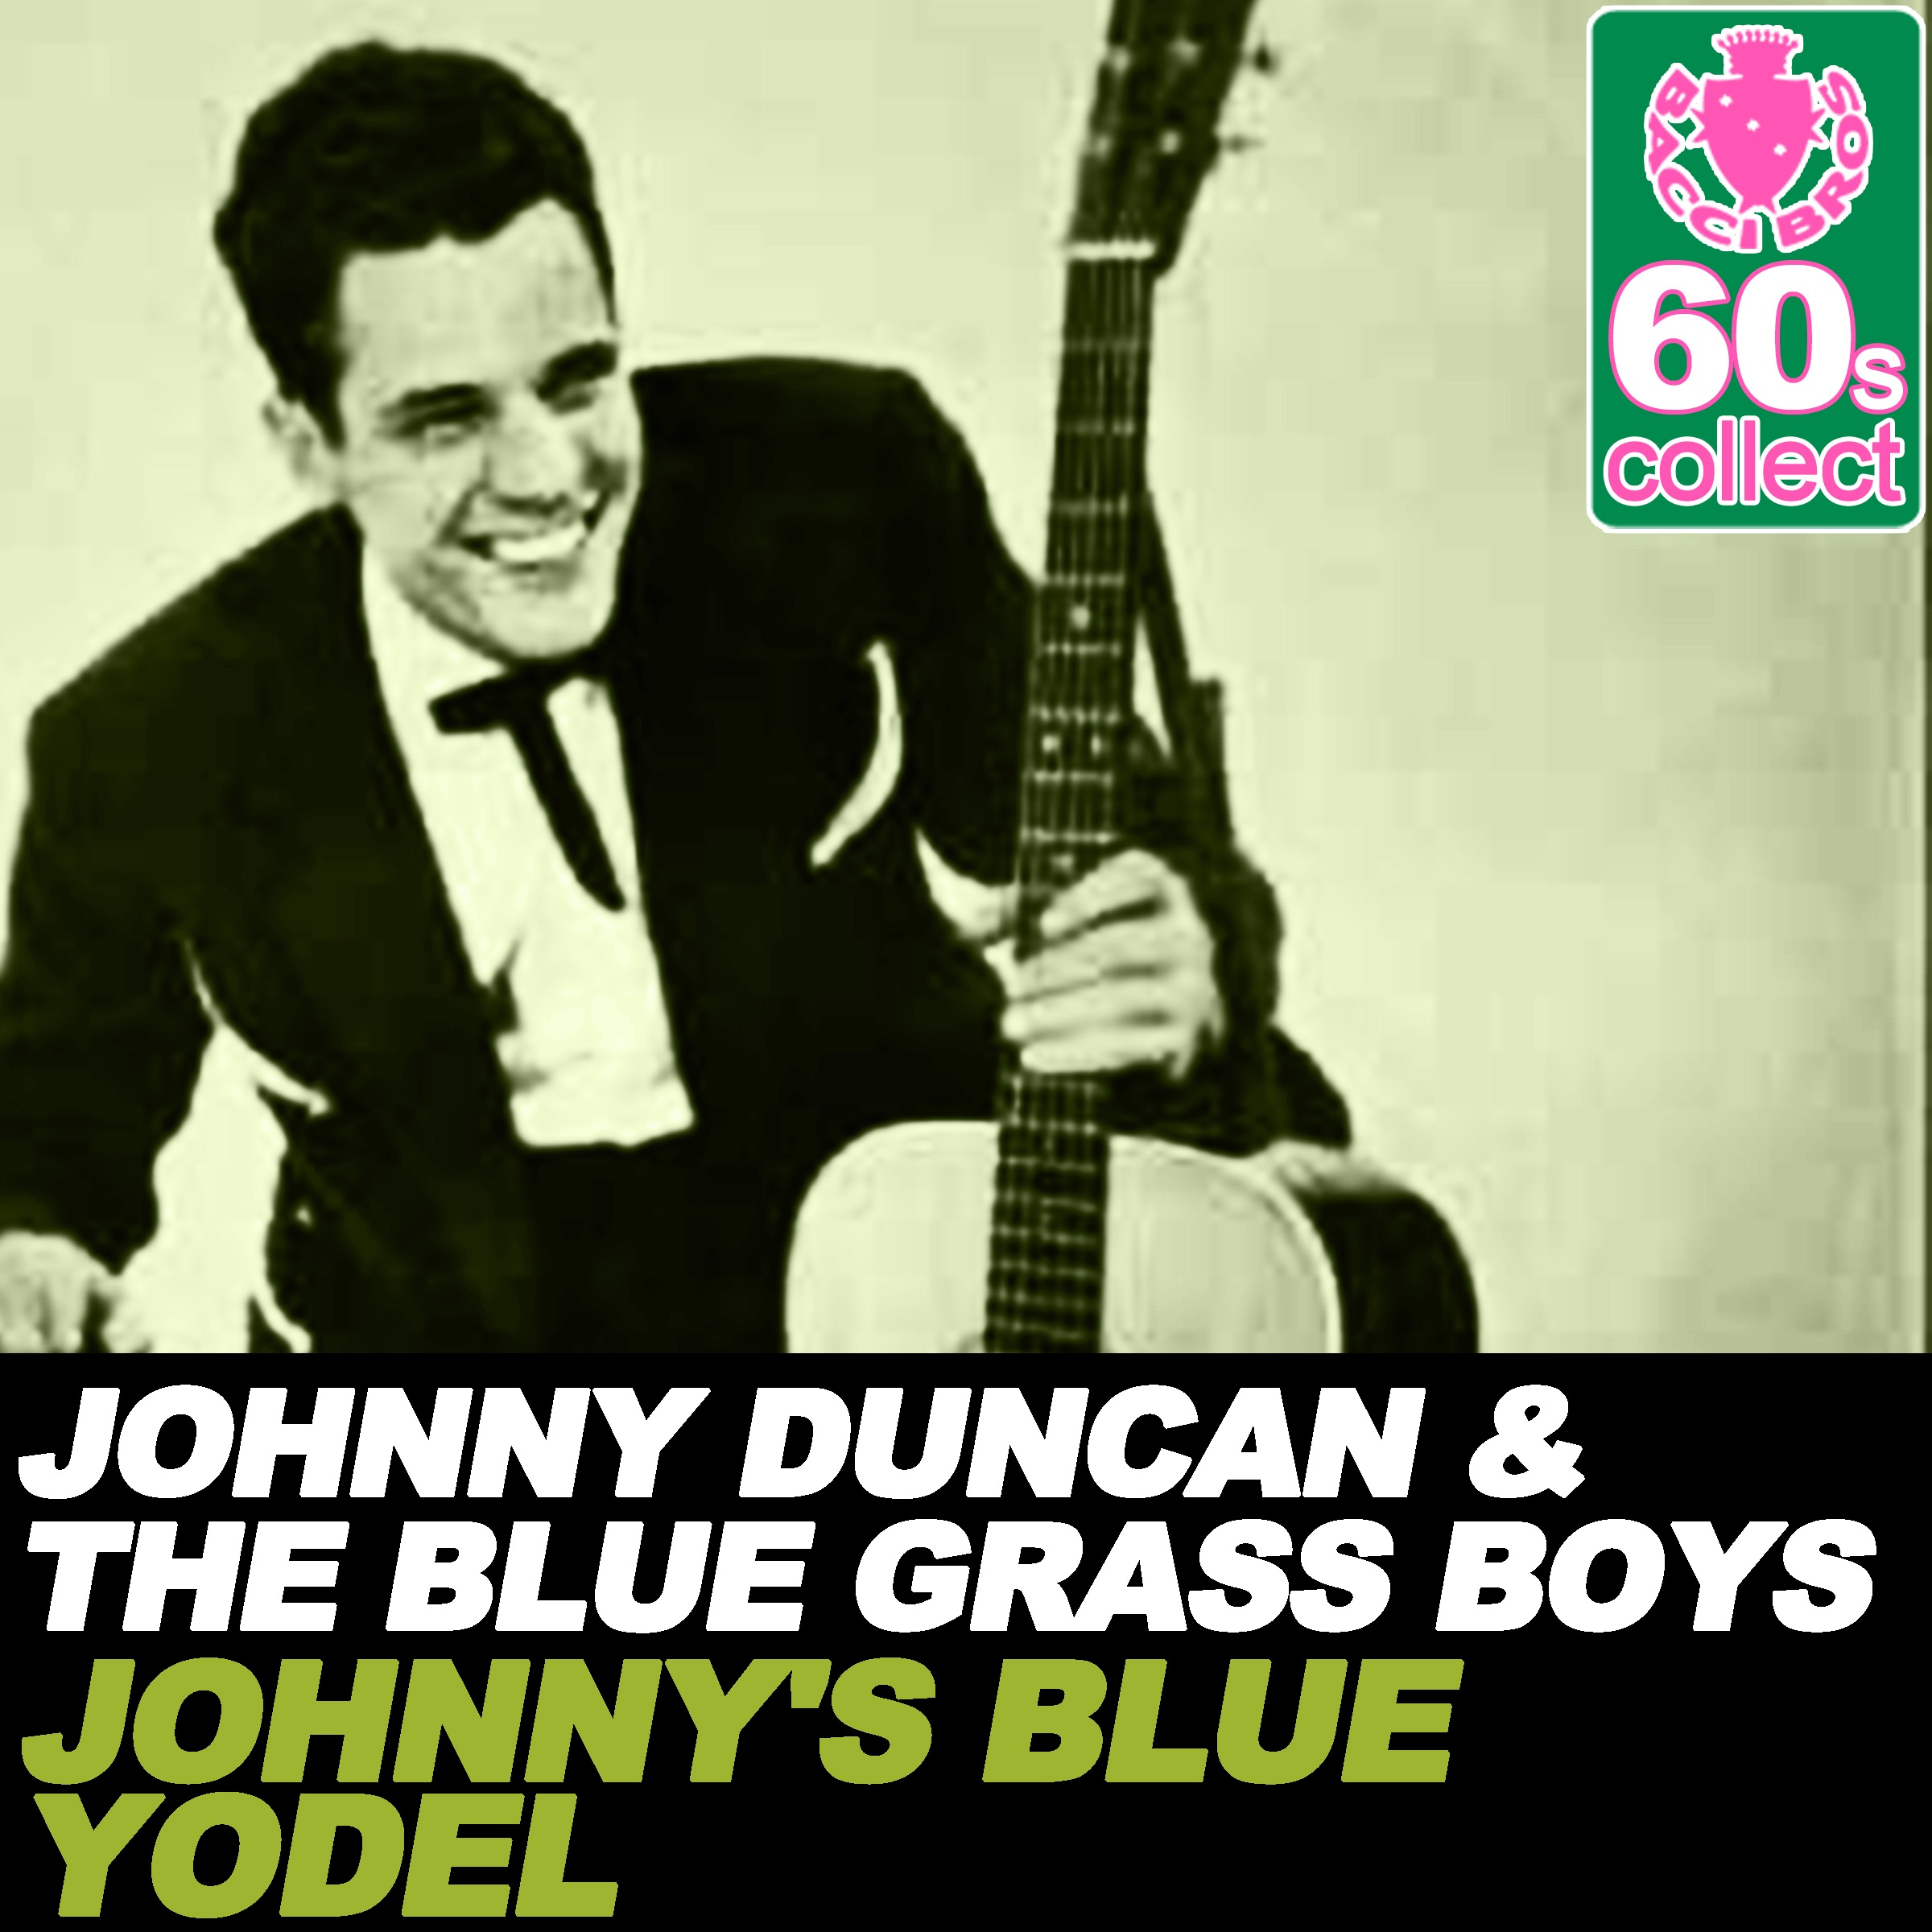 Johnny's Blue Yodel (Remastered) - Single